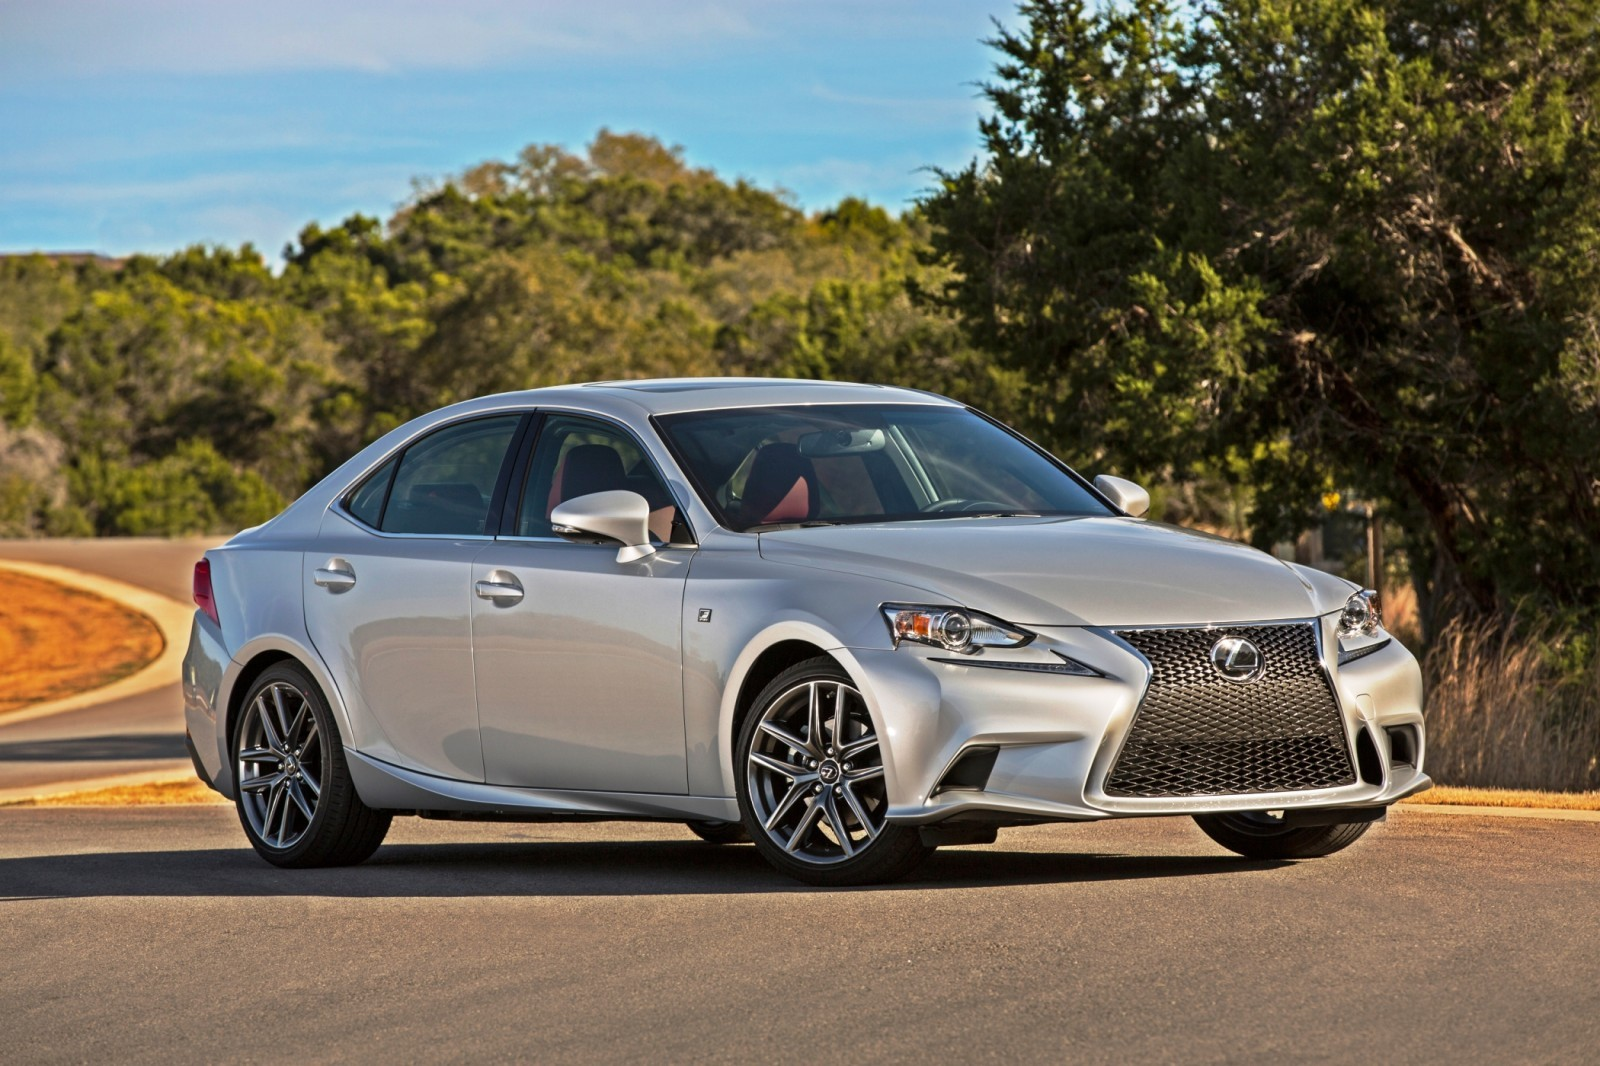 2014_Lexus_IS_350_F_SPORT_019